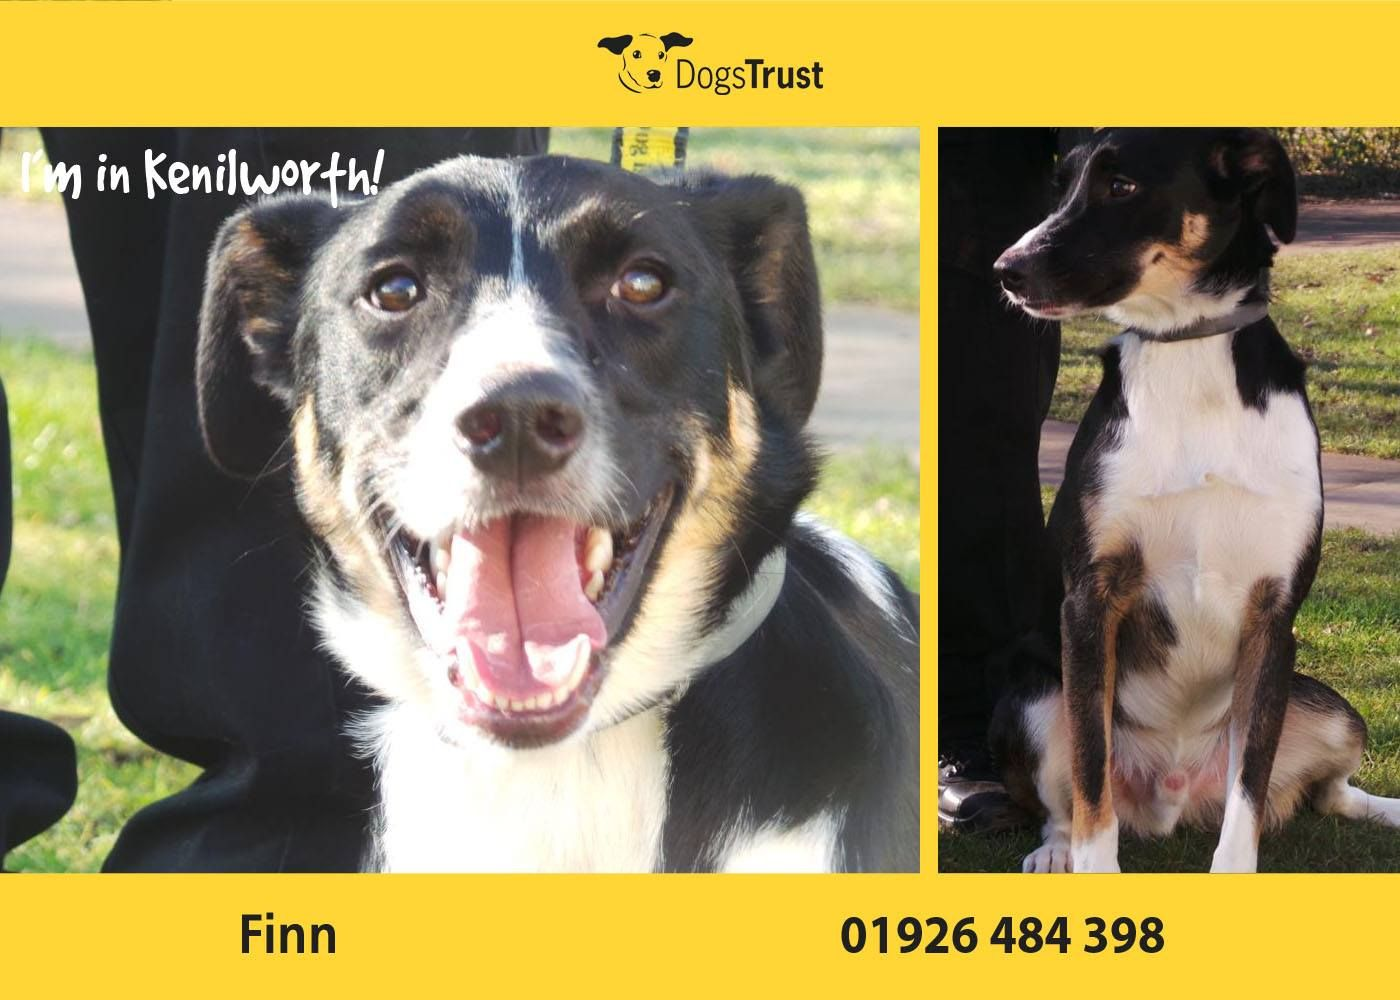 Finn Here Came To Kenilworth From A Home Because His Owners Could No Longer Look After Him From What We Have Seen So Far He Is With Images Dog Adoption Fur